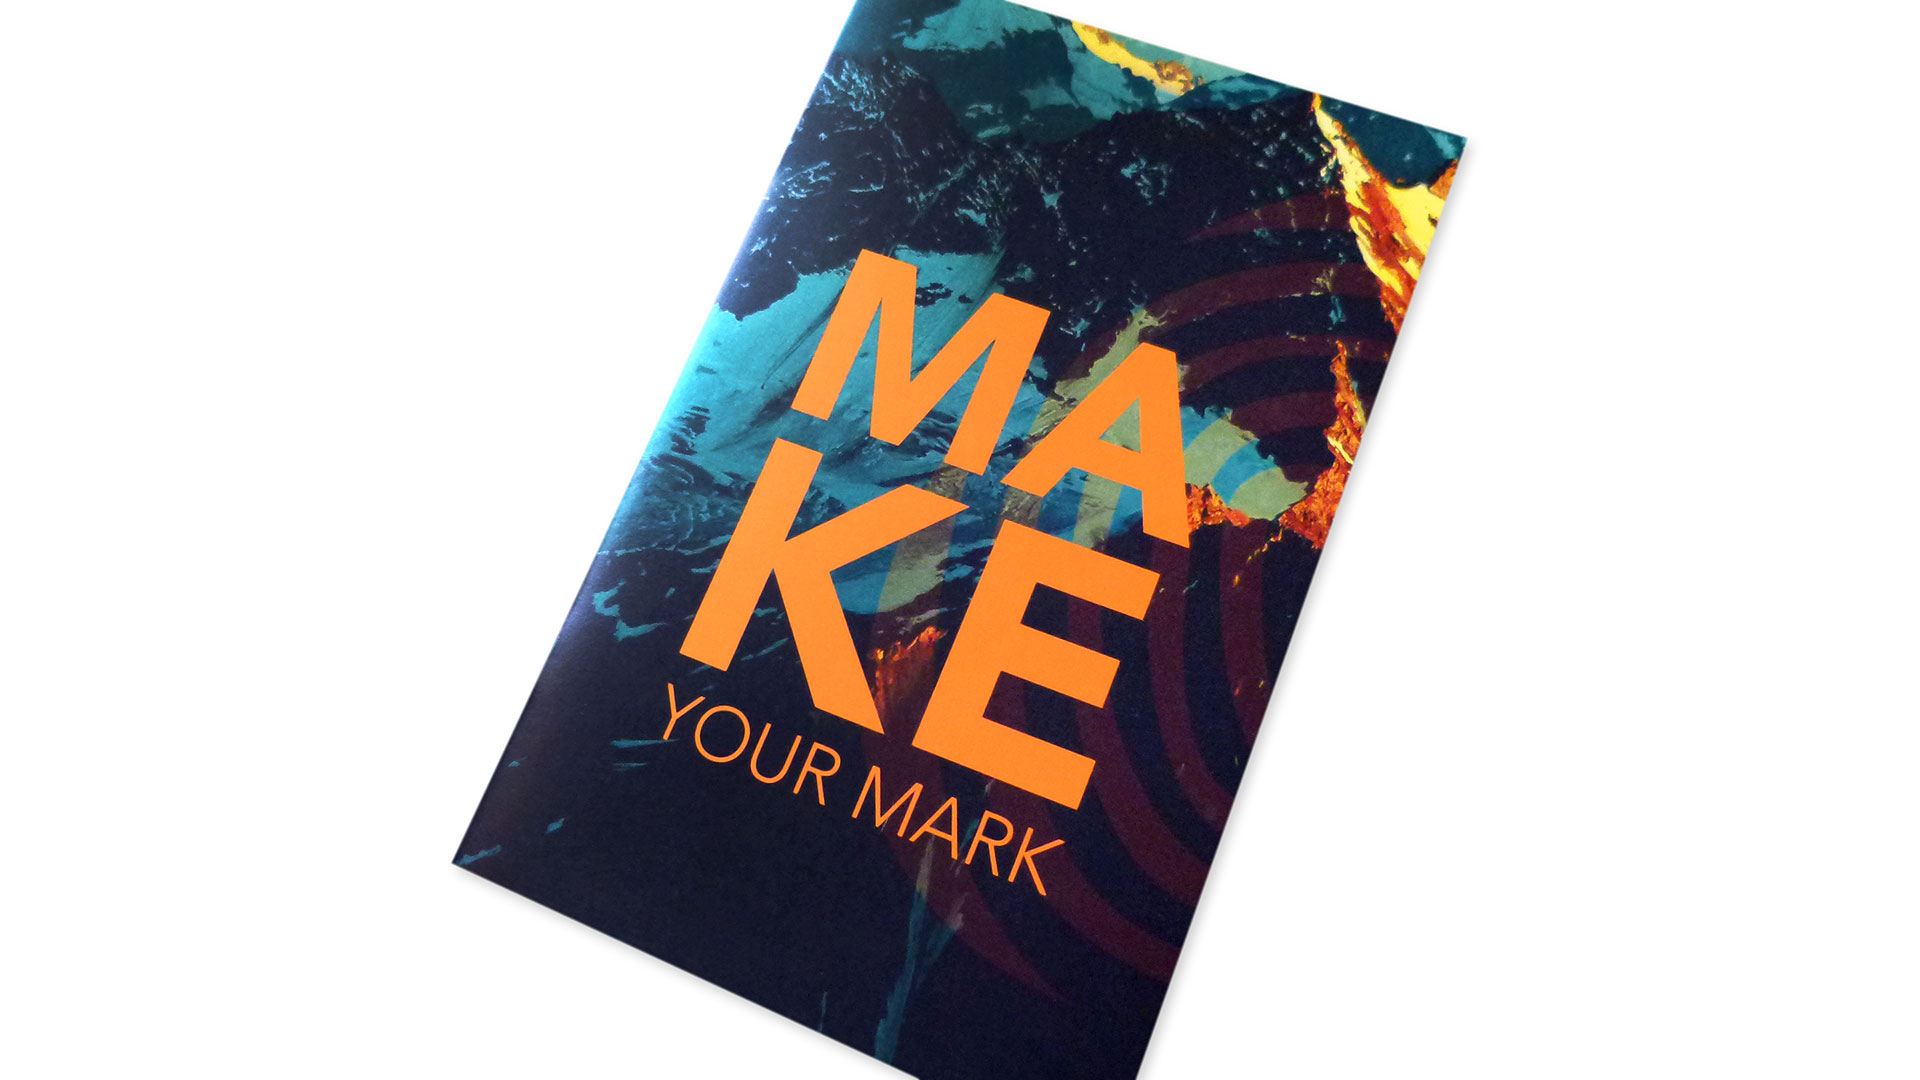 'Make Your Mark' Capabilities Brochure - PaperSpecs